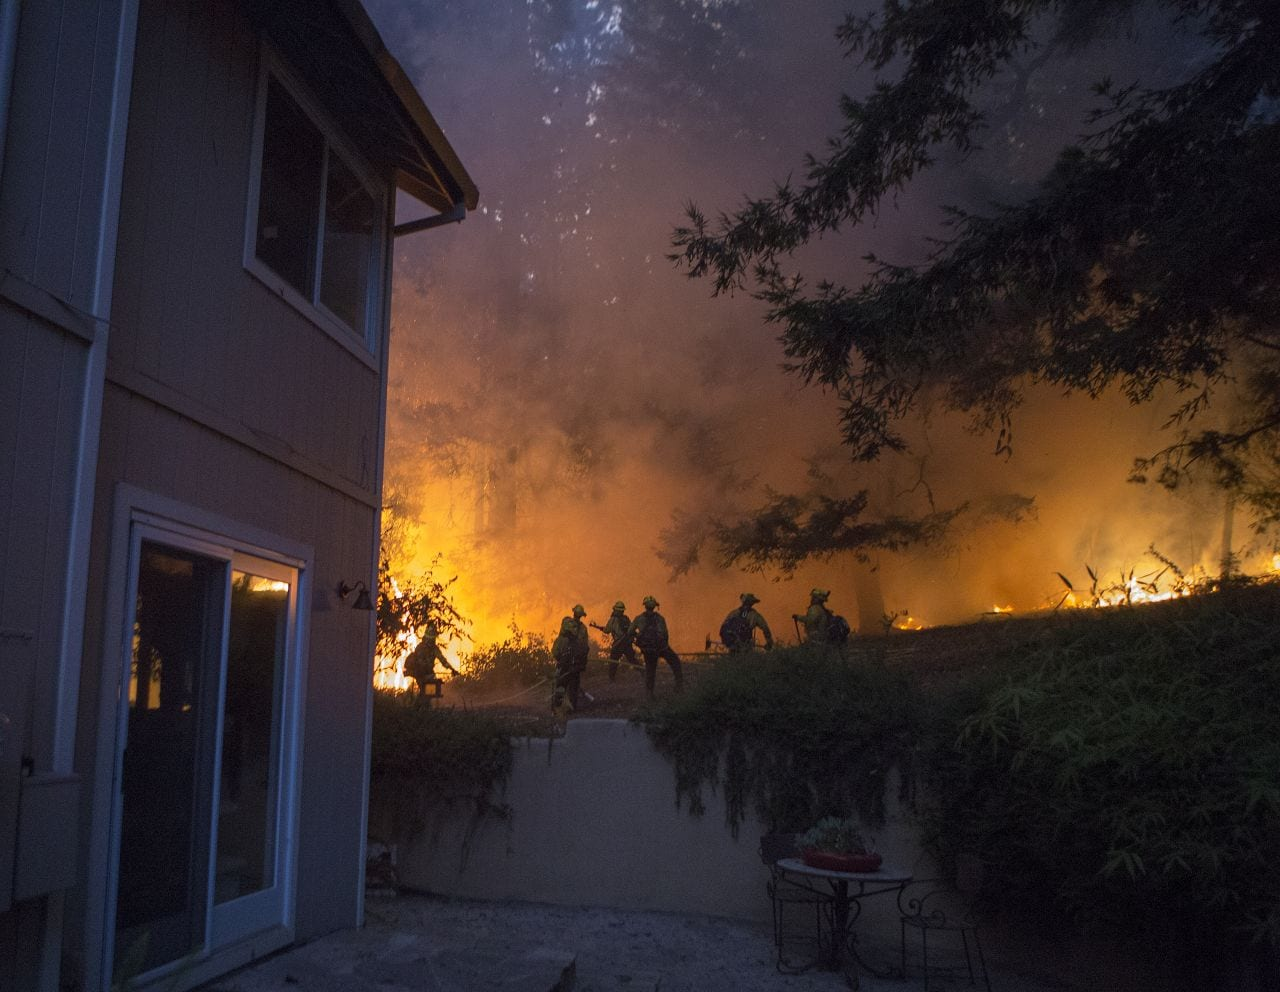 Fire outside of a home with firefighters combatting the blaze. Photo by David Royal